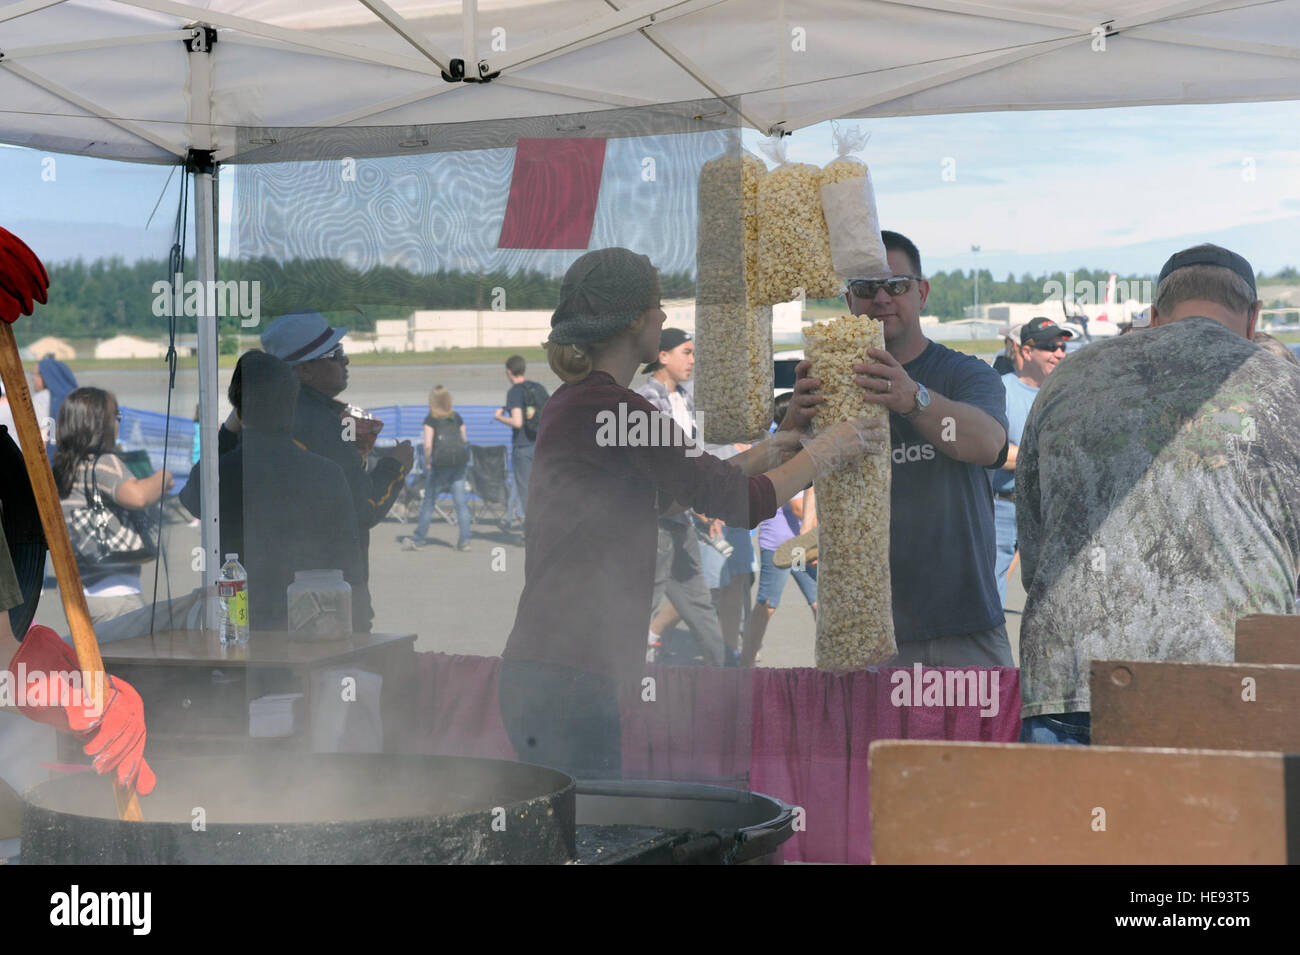 Various booths and vendors provided popcorn and other services to visitors from around Alaska attending Joint Base - Stock Image